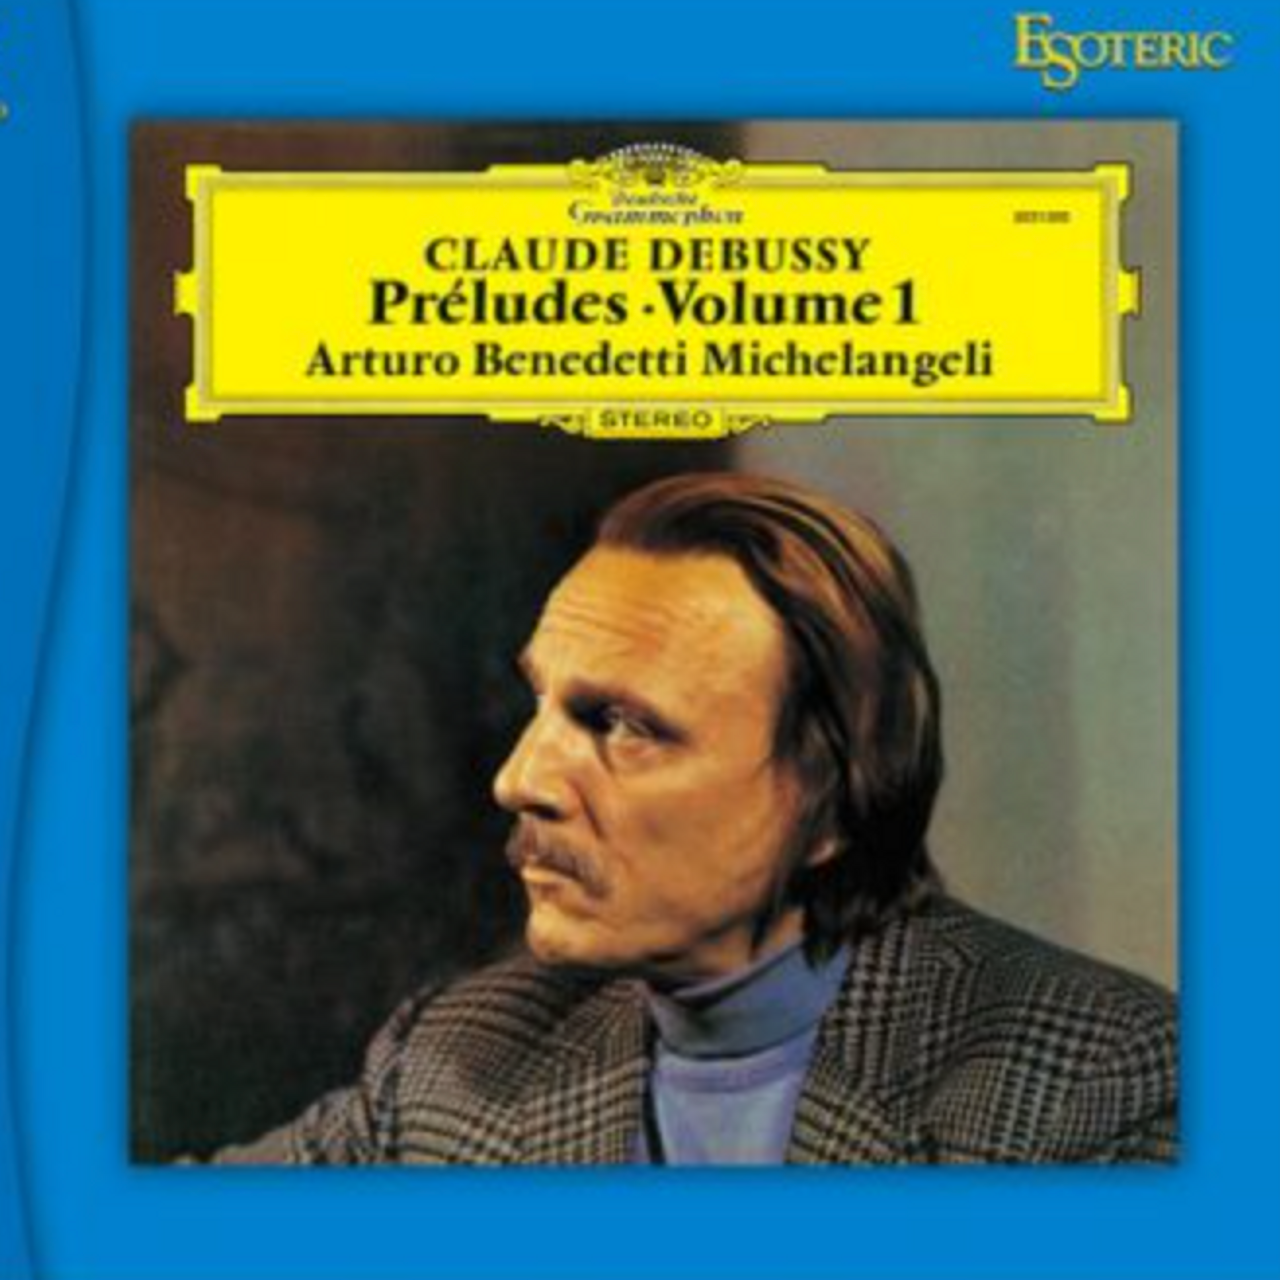 Esoteric Debussy by Michelangeli SACD